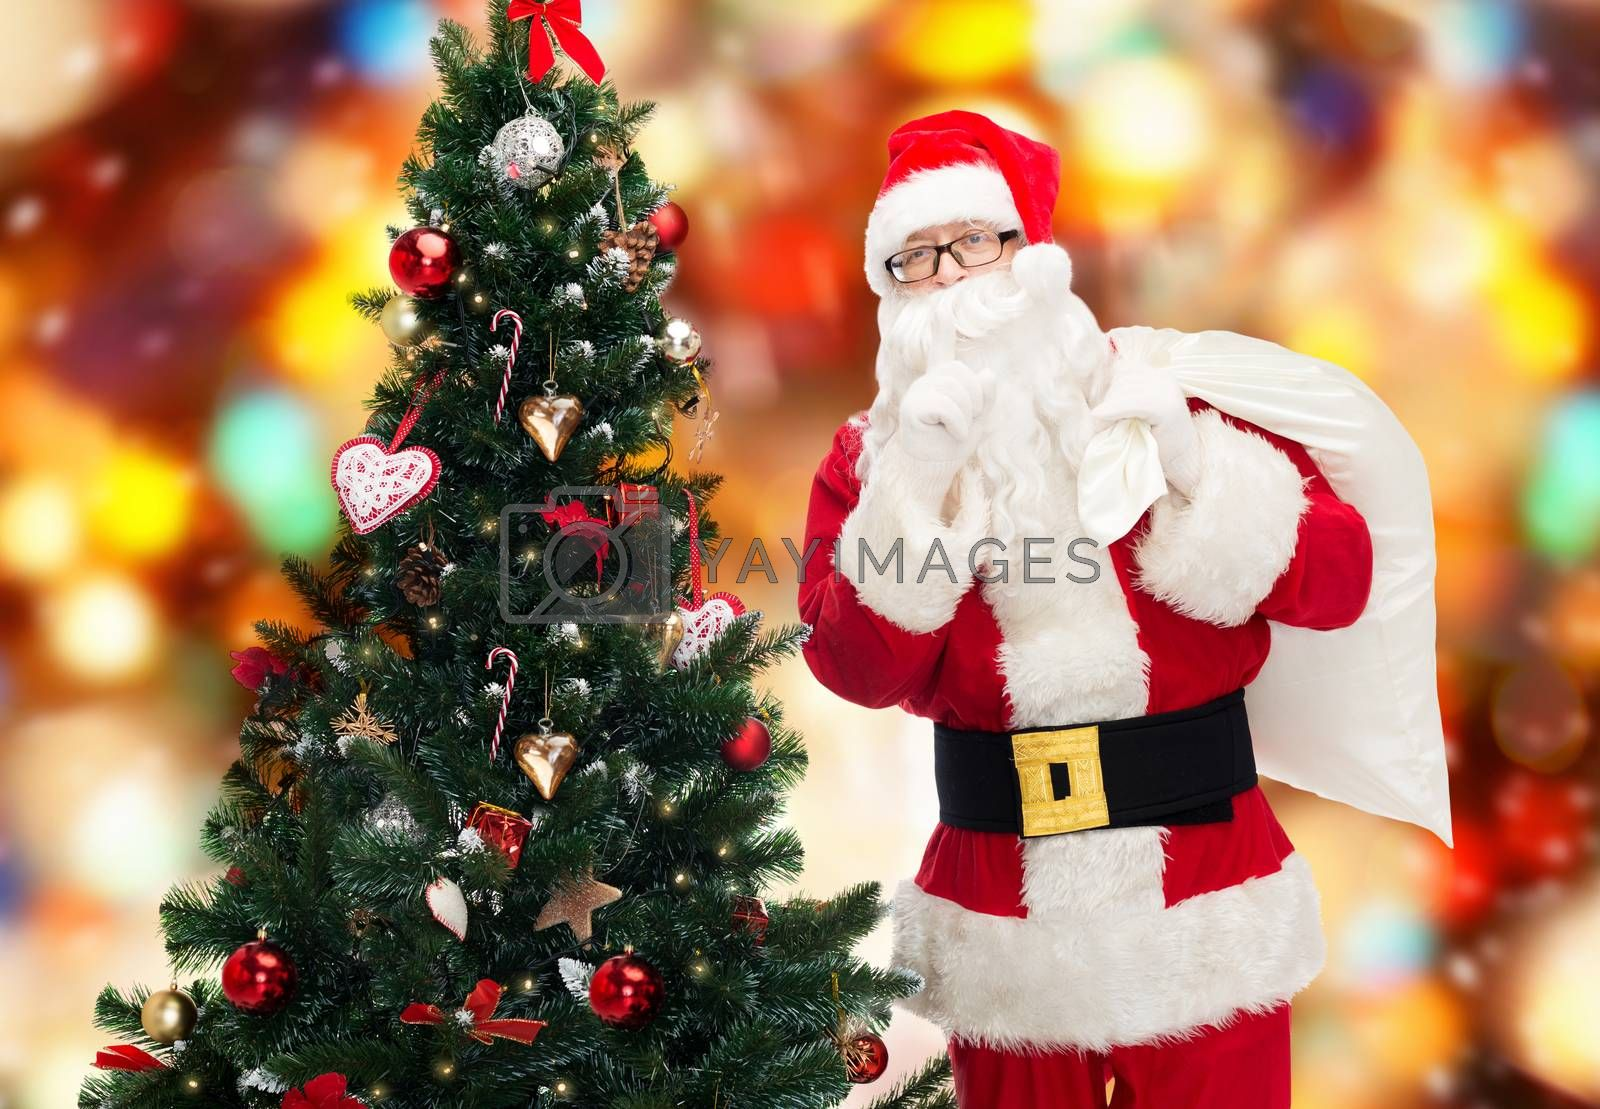 christmas, holidays and people concept - man in costume of santa claus with bag and christmas tree making hush gesture over red lights background